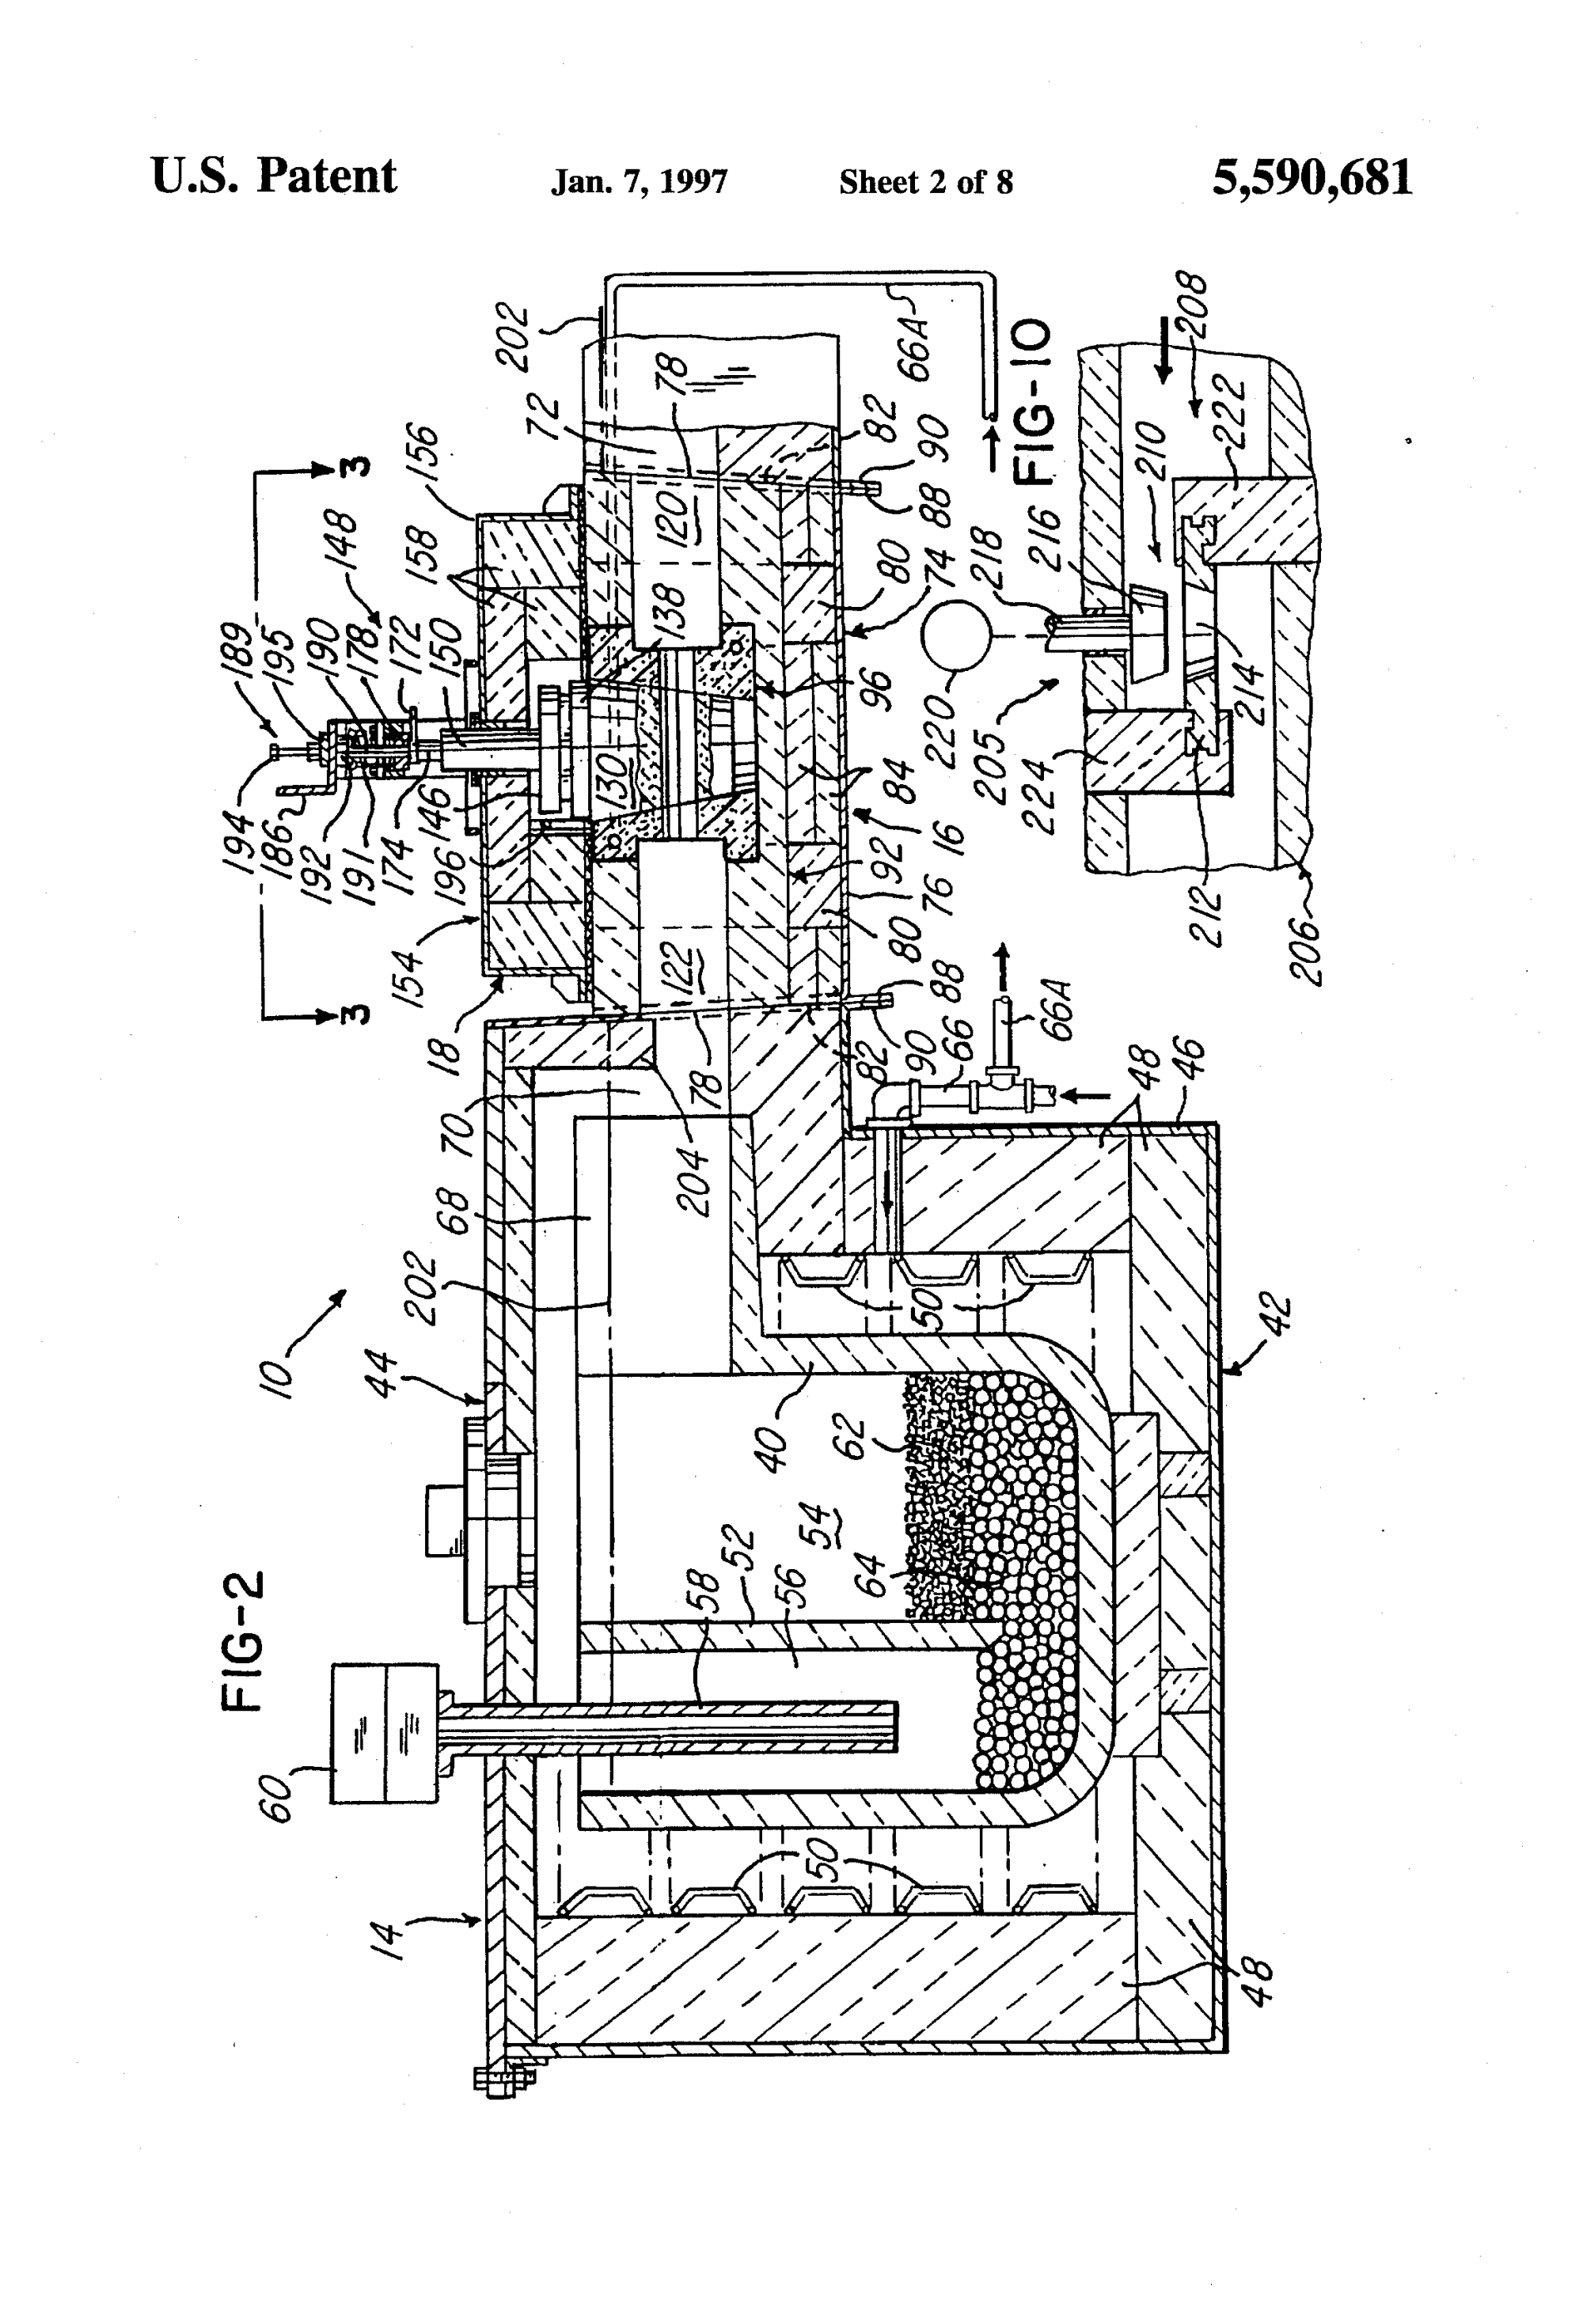 hight resolution of patent us5590681 valve assembly google patents patent us5590681 valve assembly google patents fuel pump wiring harness diagram 681 fuel pump wiring harness